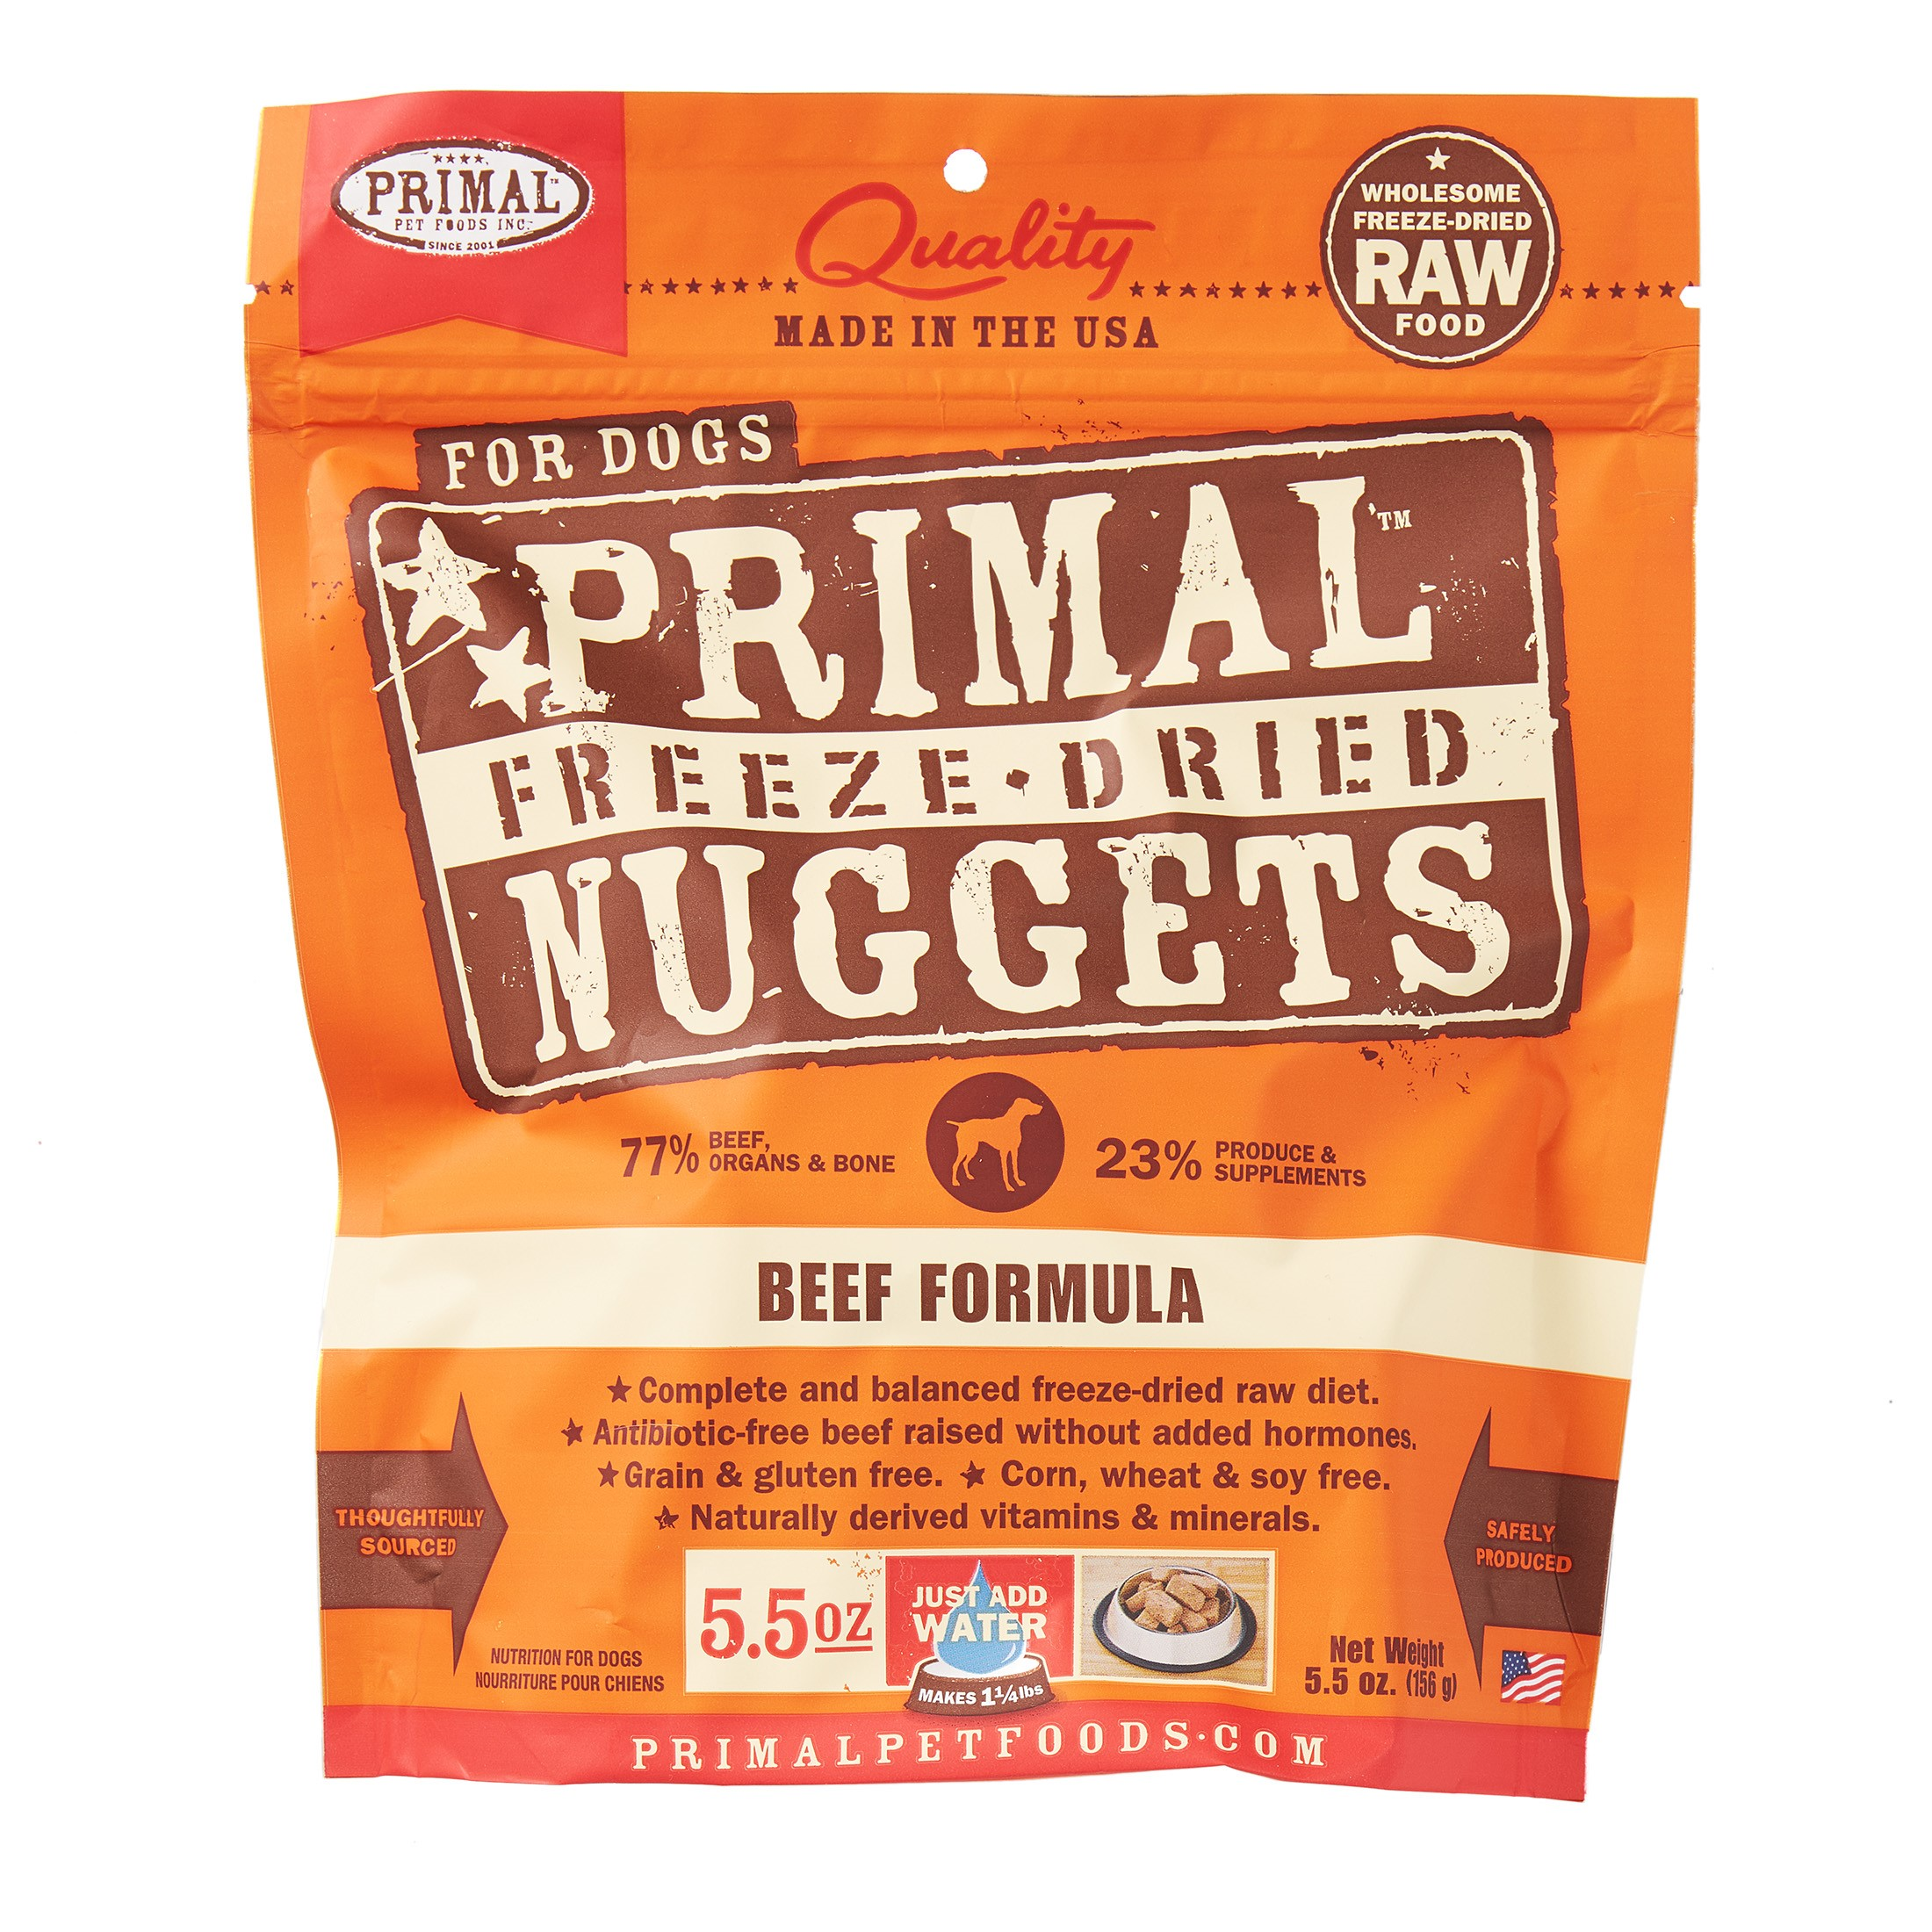 Primal Pet Foods Nuggets Grain-Free Beef Formula Freeze Dried Dog Food, 5.5 oz